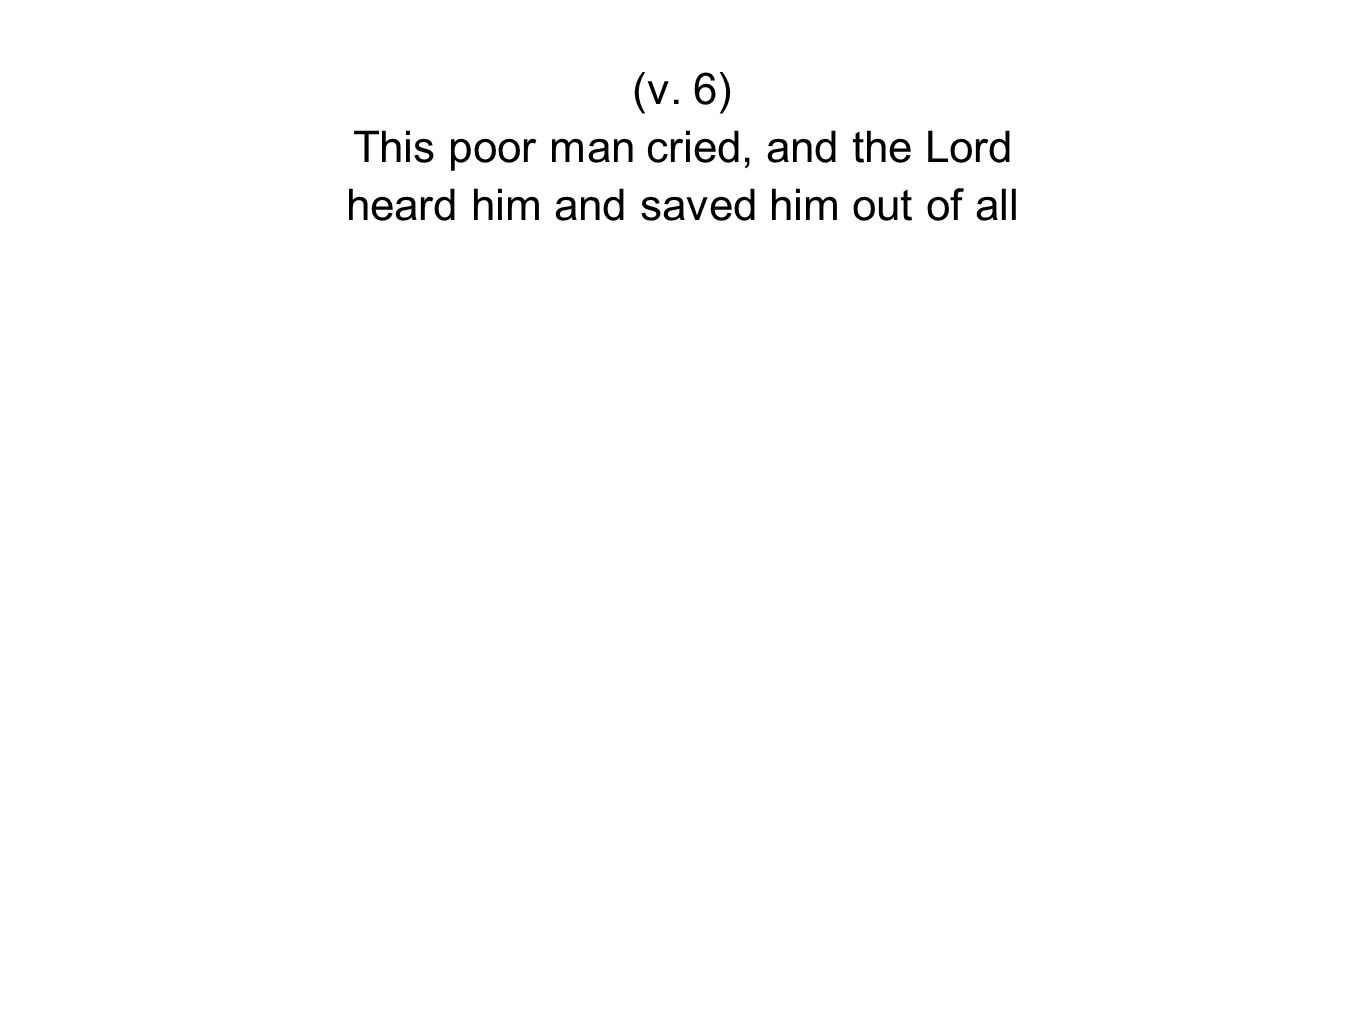 (v. 6) This poor man cried, and the Lord heard him and saved him out of all